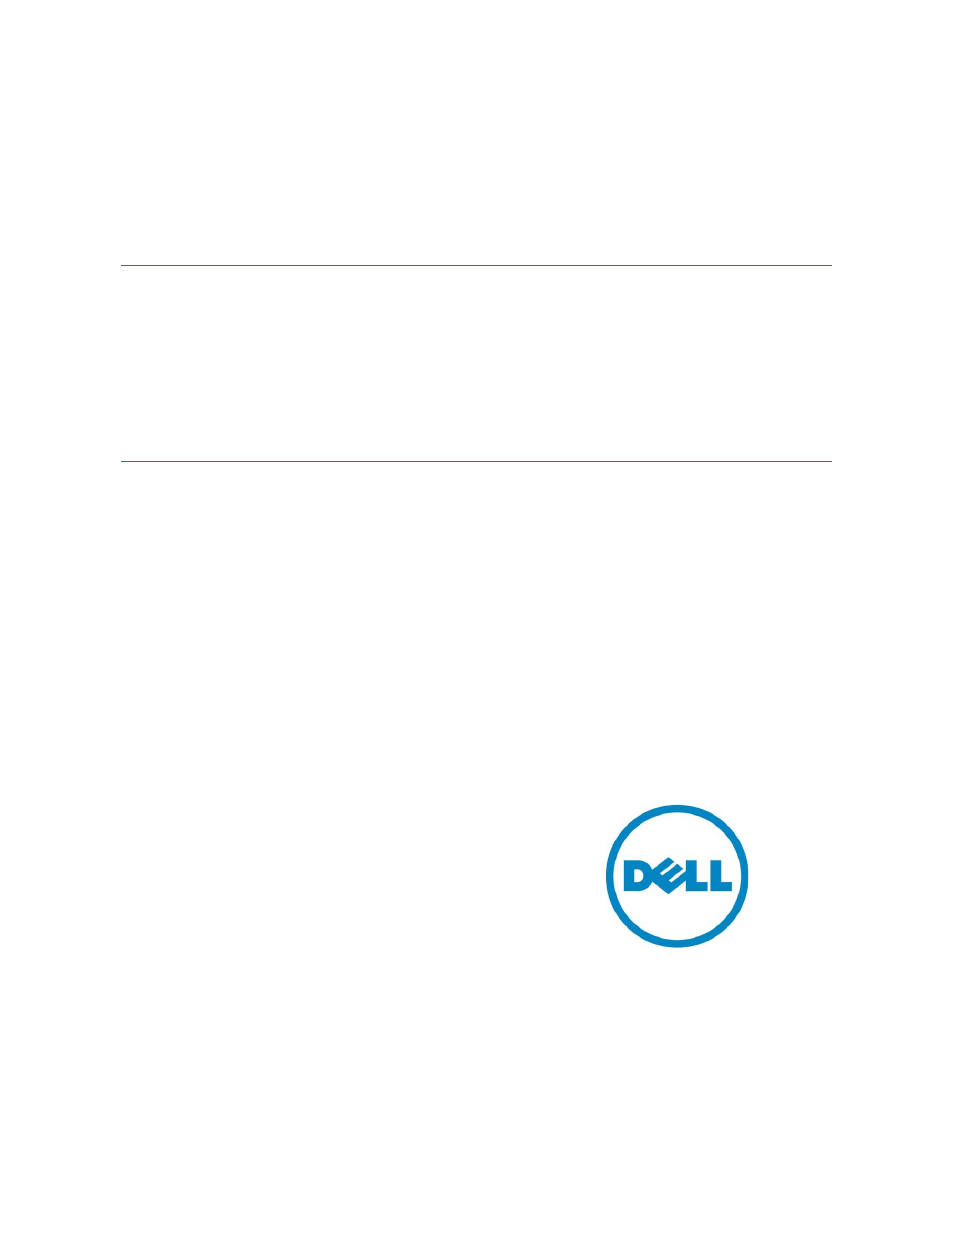 Dell POWEREDGE R720 User Manual | 9 pages